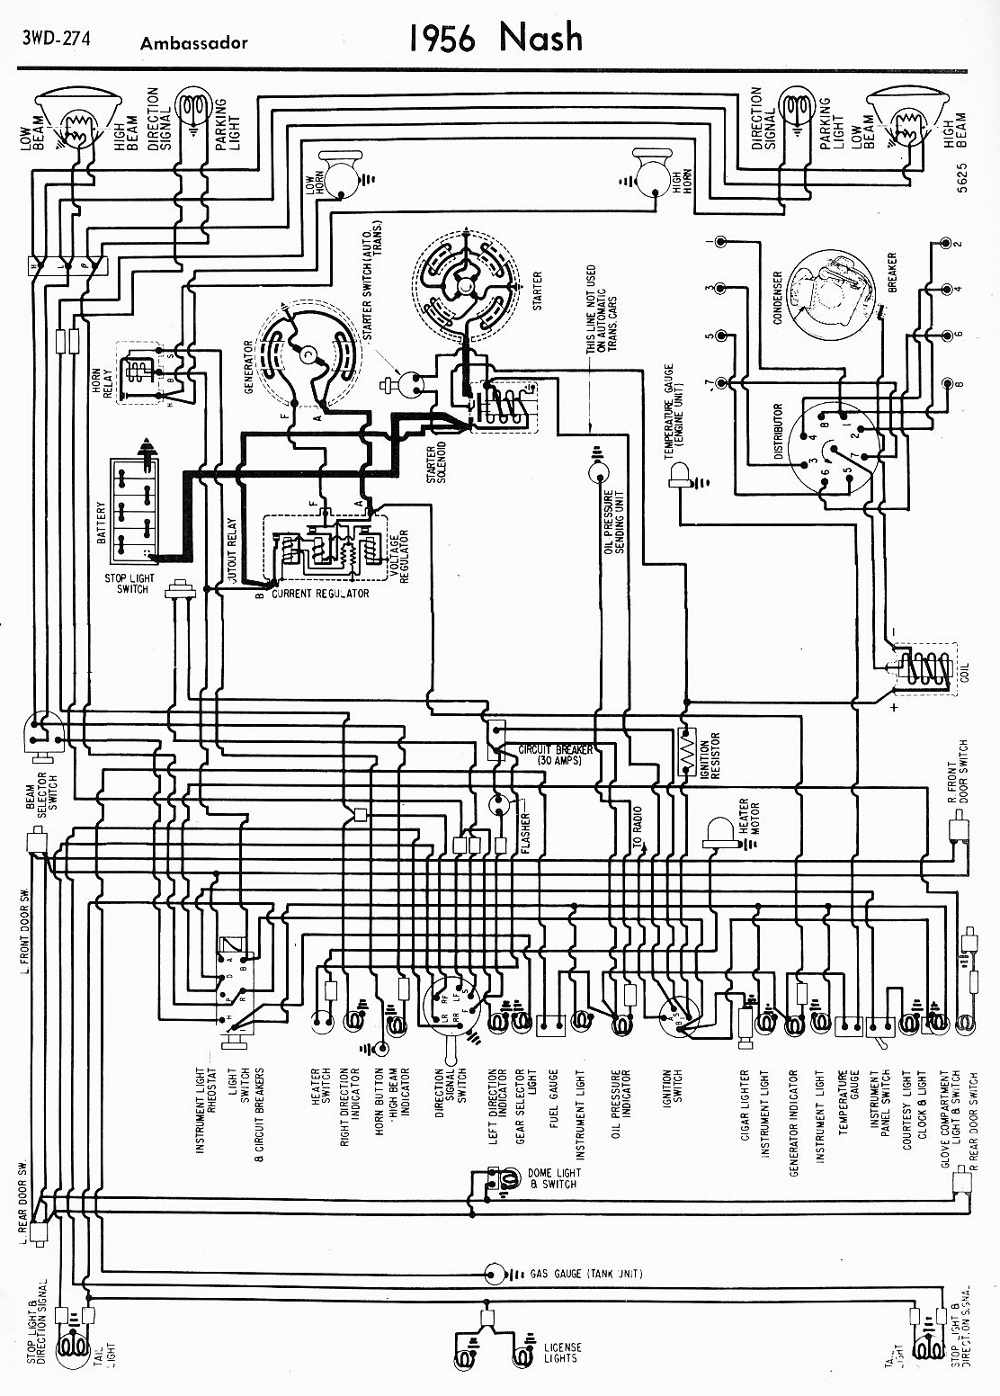 Wiring Diagram 1985 Blazer Explained Diagrams Monte Carlo 1983 Electrical C60